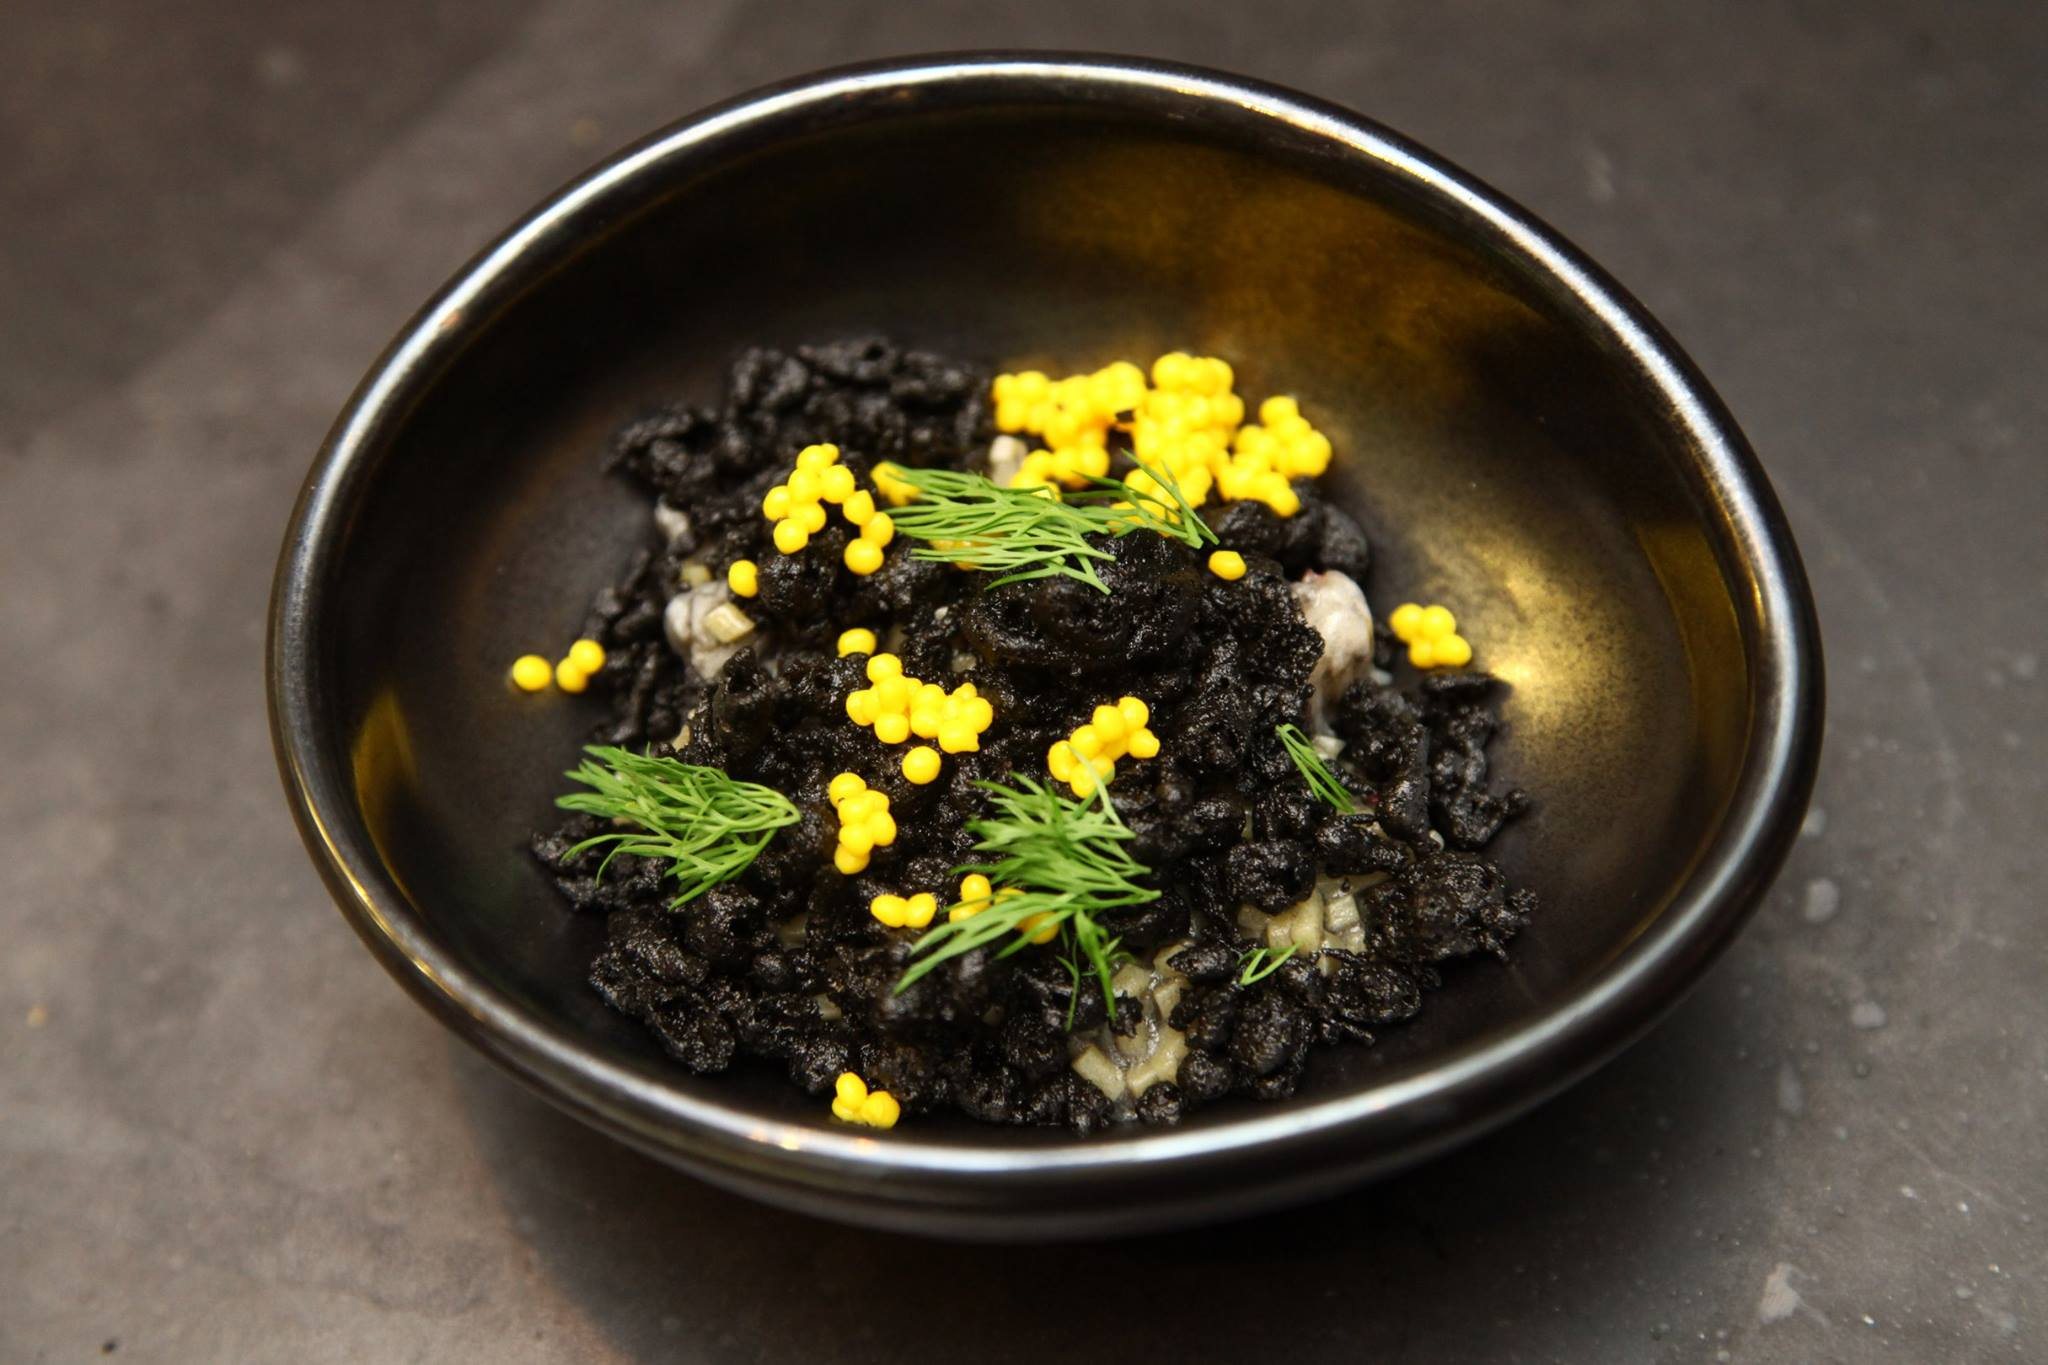 chefs-society-chef-hyun-seok-choi-korean-chef-at-chefs-club-nyc-cut-linguine-with-seaweed-crumbs-squid-ink-cream-lobster-and-saffron-caviar